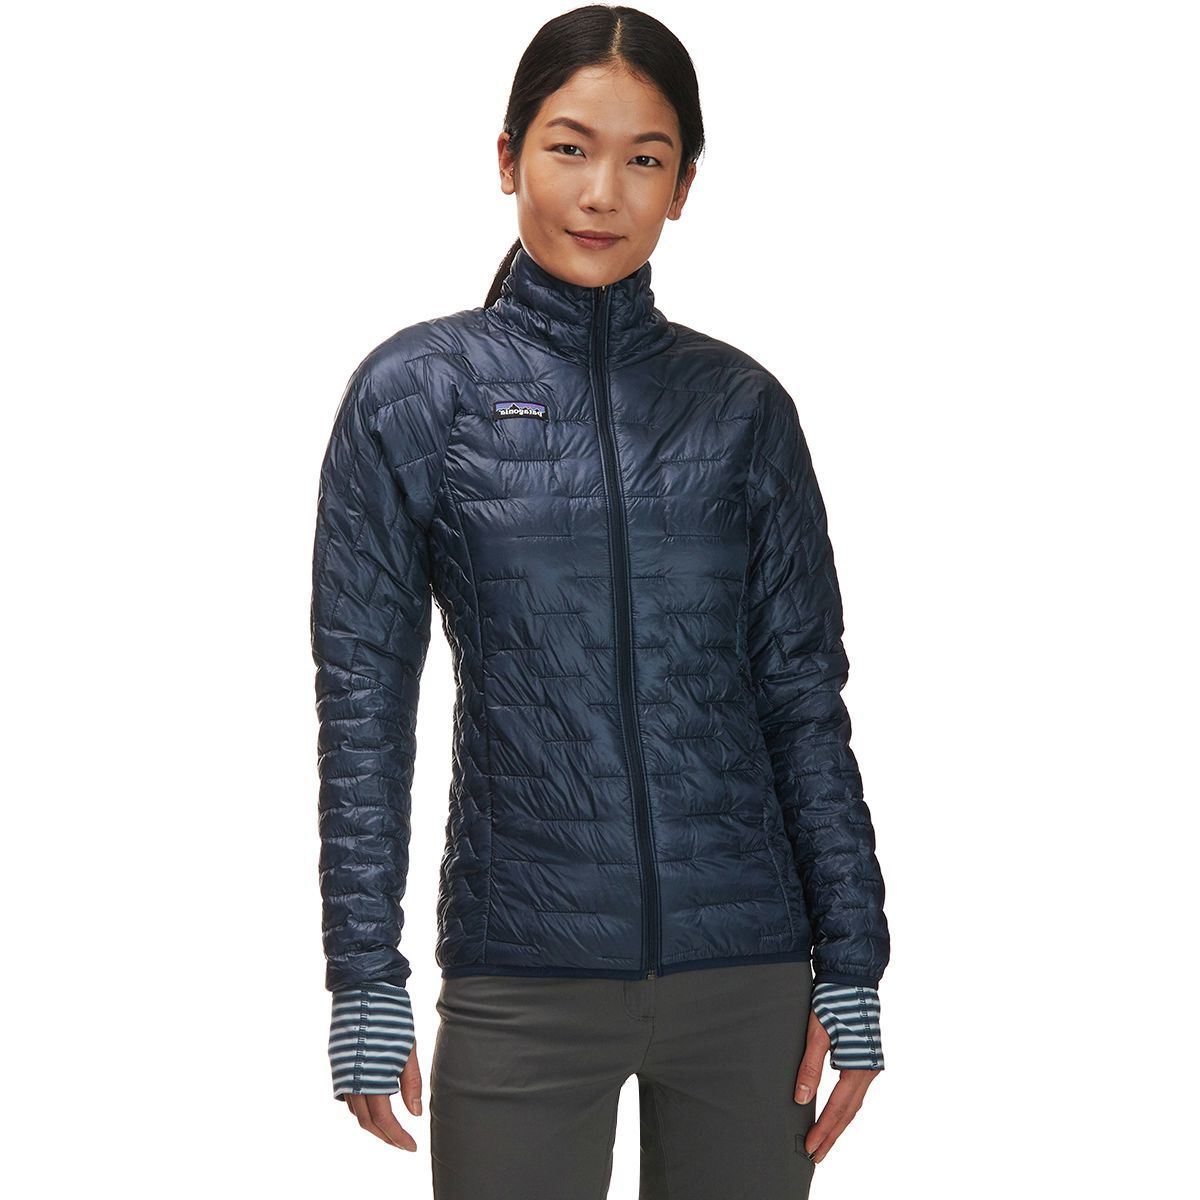 Patagonia Micro Puff Insulated Jacket - Women's